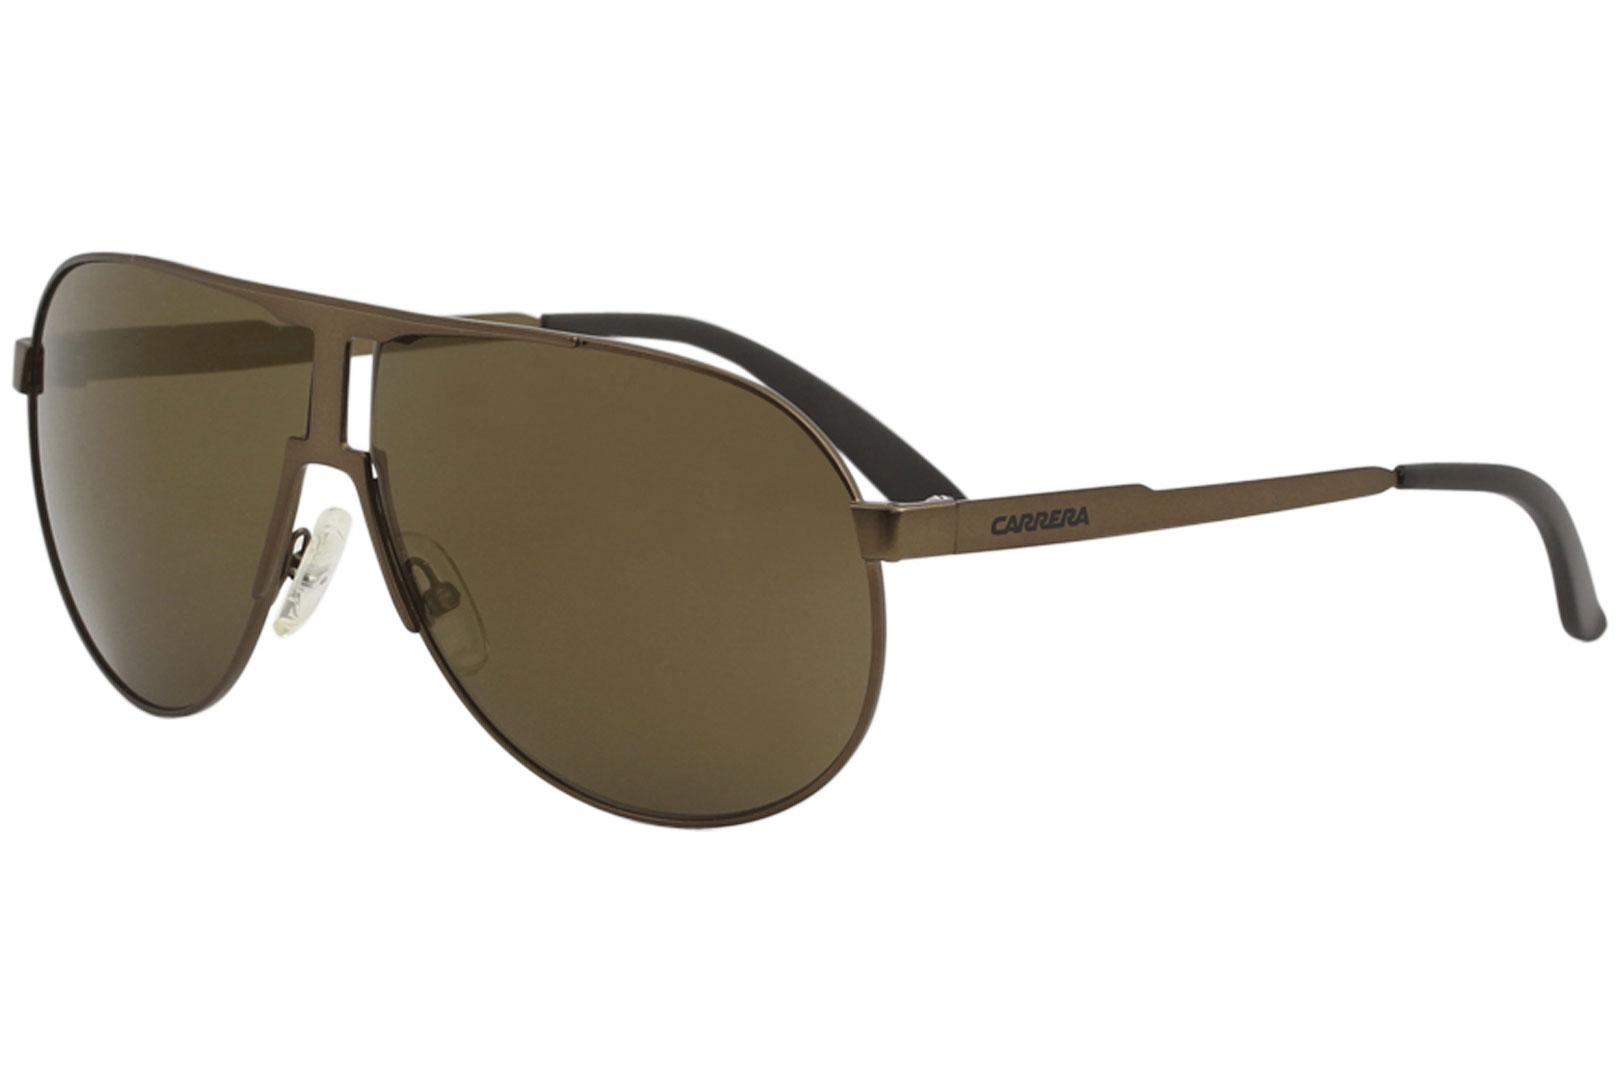 899e7d623 Carrera New Panamerika Fashion Pilot Sunglasses by Carrera. Touch to zoom